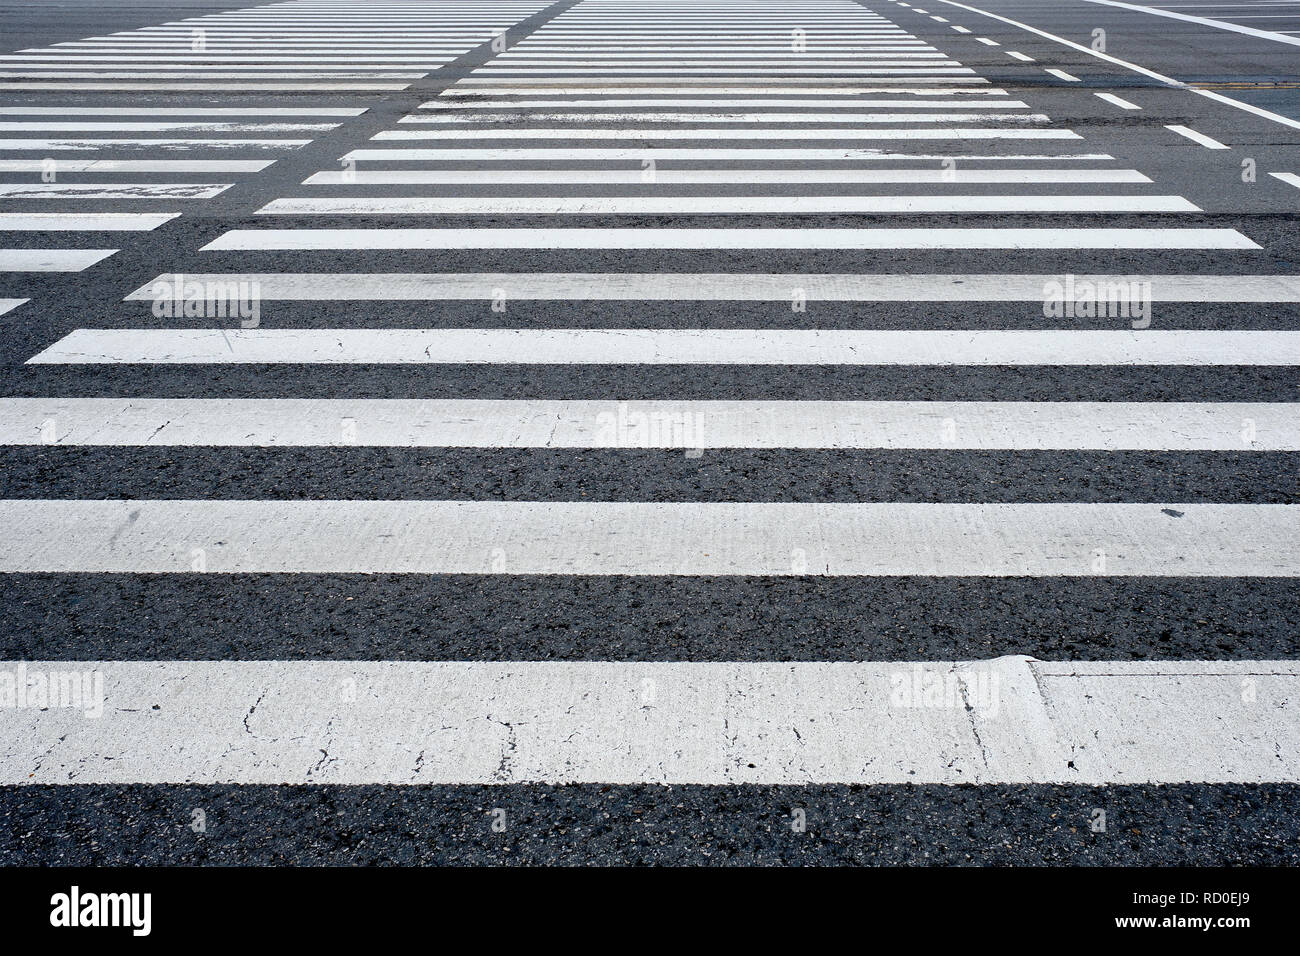 Crosswalk pedestrian crossing in the street - Stock Image